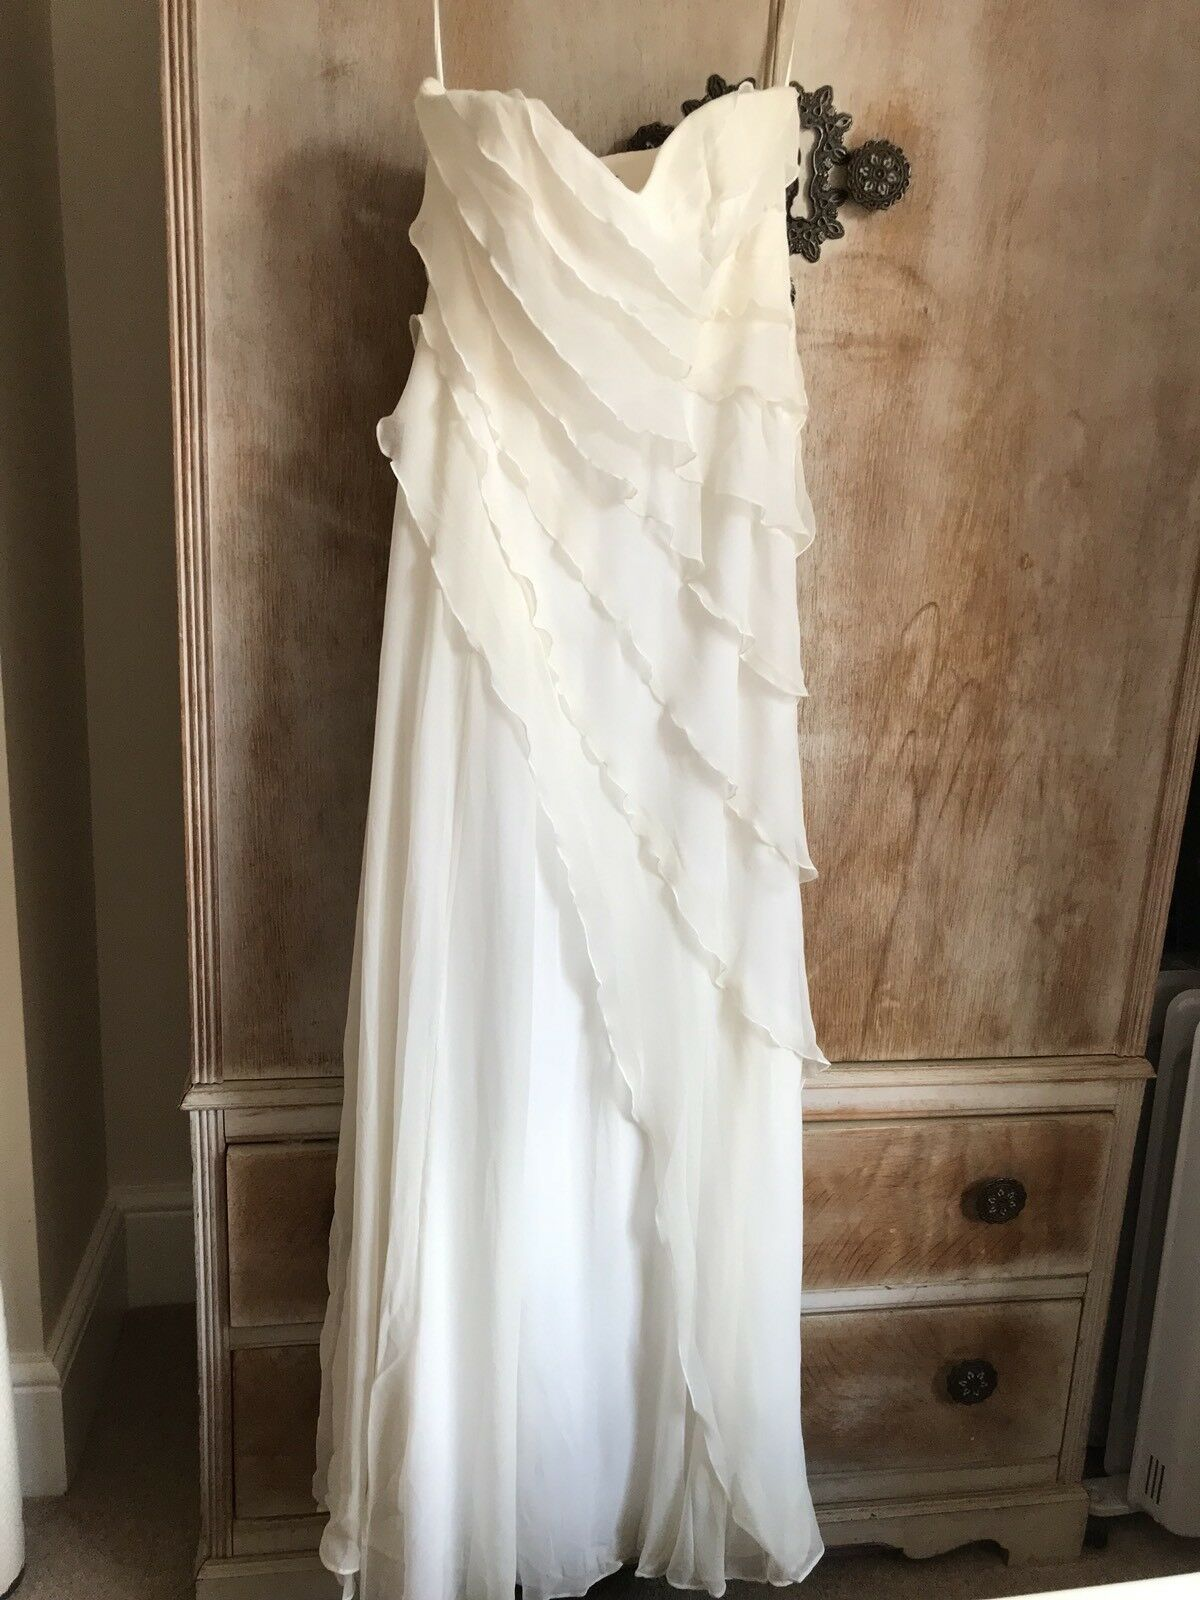 Coast Ivory Cream Monroe Strapless Strapless Strapless Maxi Tiered Frill Dress 8 Wedding Waterfall 1251ba